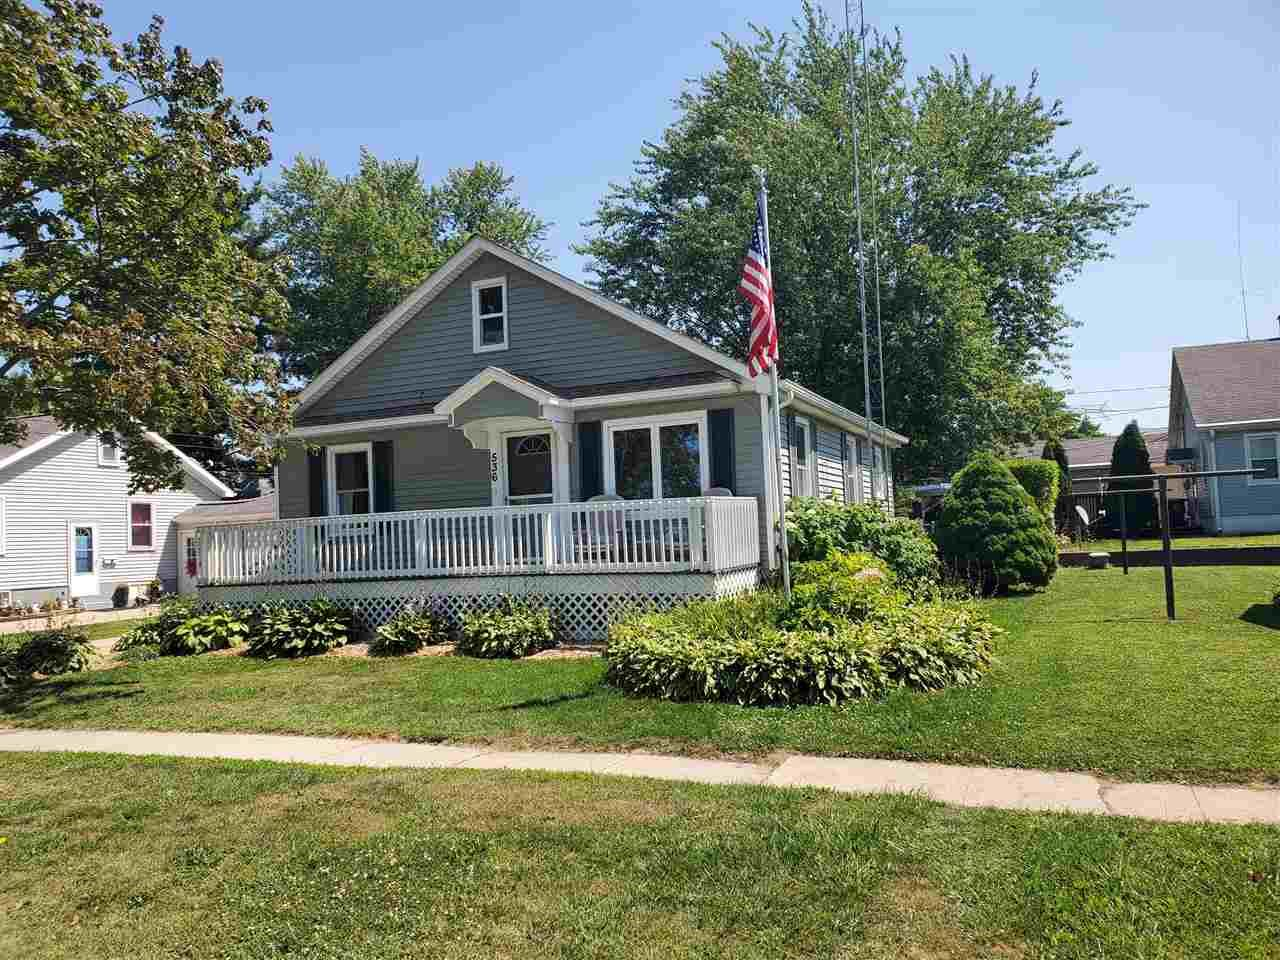 536 19th Ave, Monroe, WI 53566 - #: 1890456